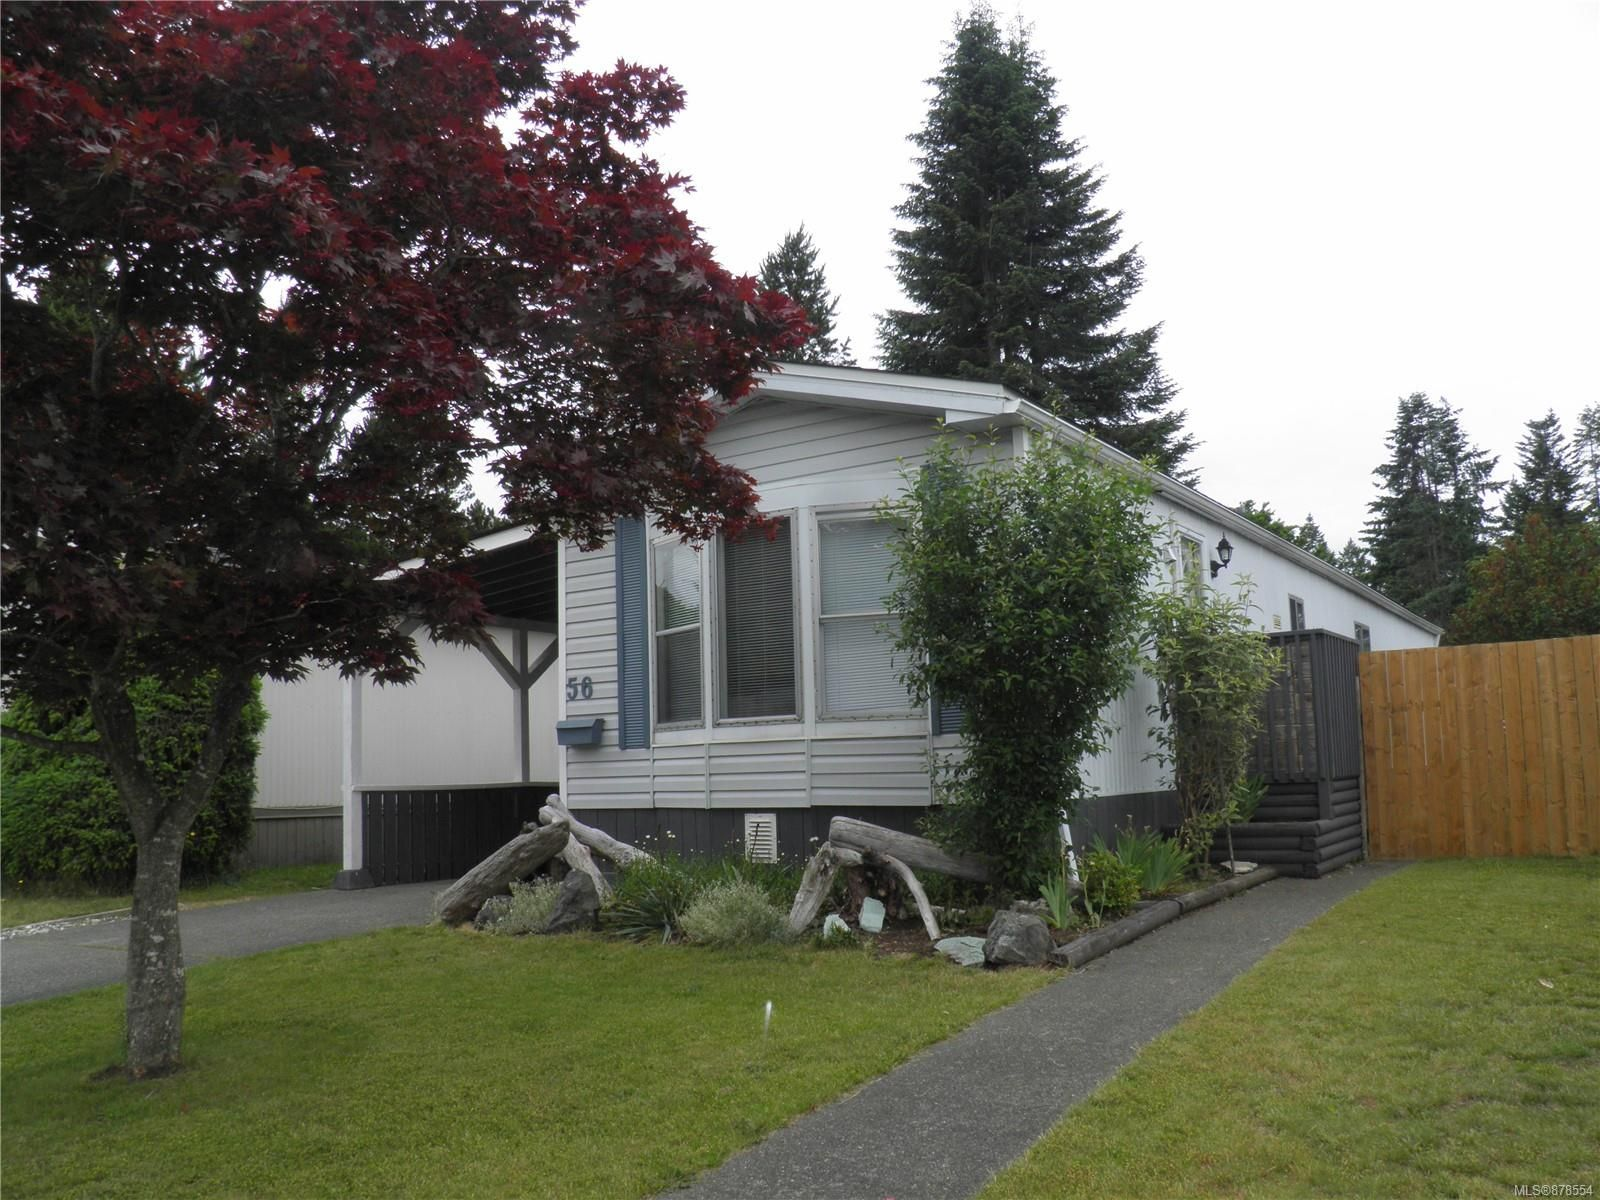 Photo 2: Photos: 56 390 Cowichan Ave in : CV Courtenay East Manufactured Home for sale (Comox Valley)  : MLS®# 878554